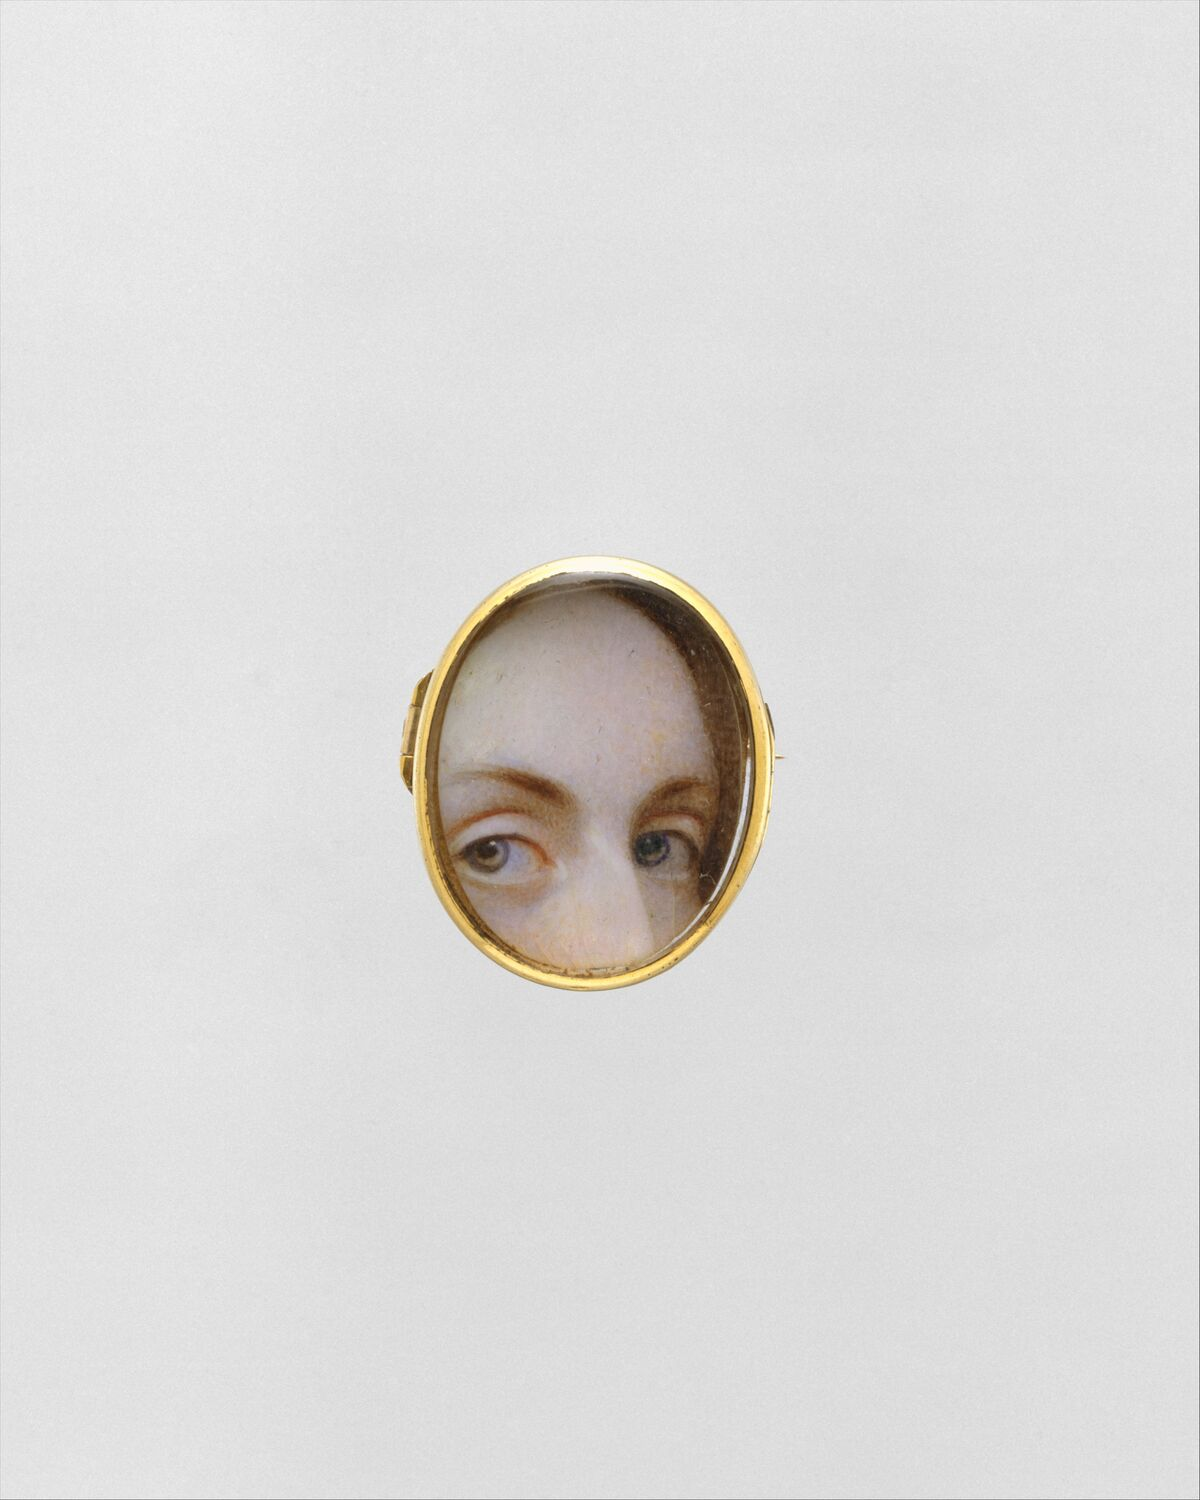 Lover's Eyes (front), ca. 1840. Courtesy of The Metropolitan Museum of Art.